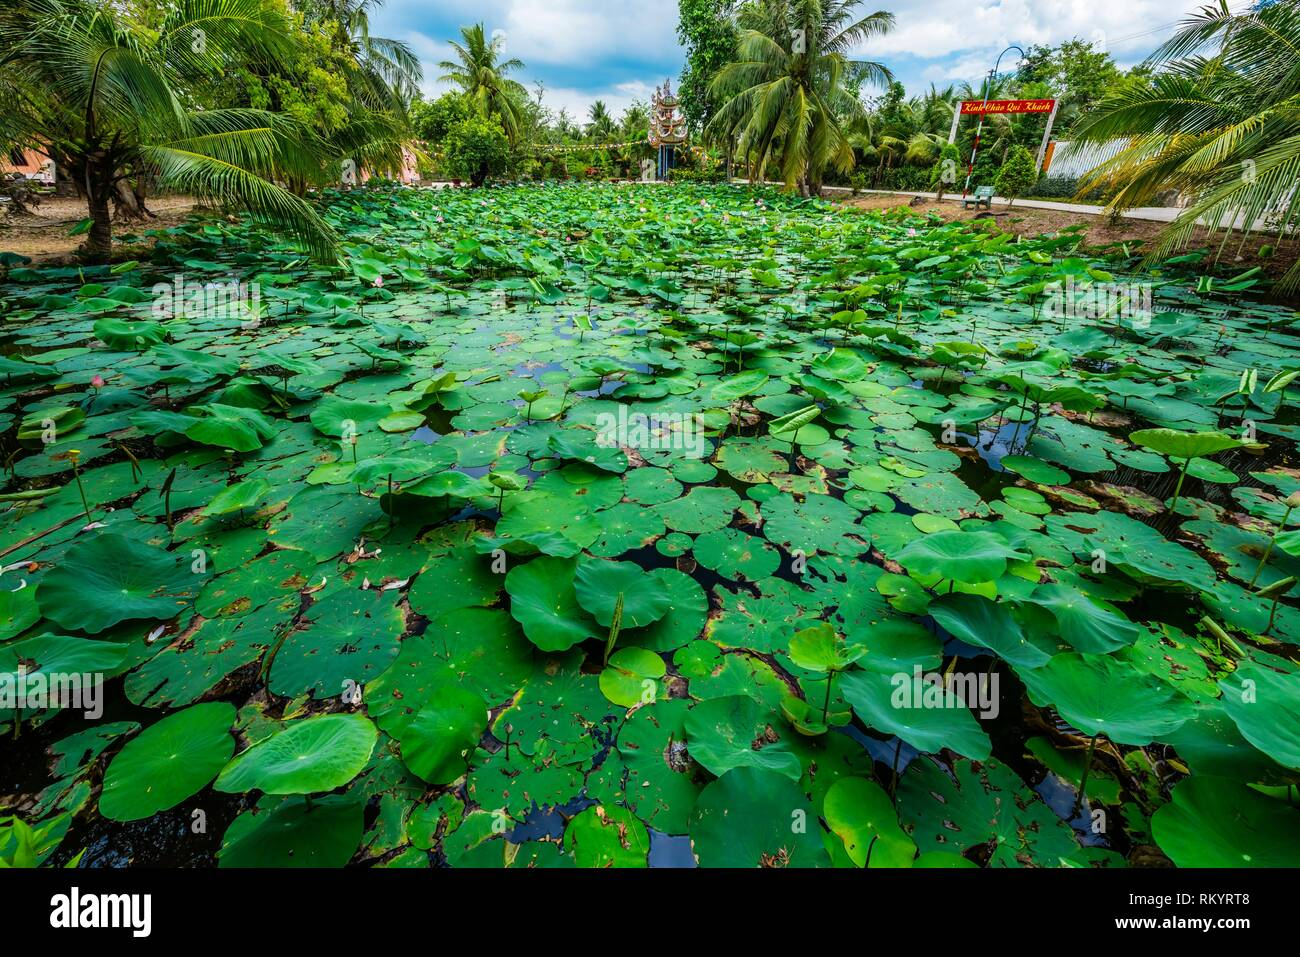 Lily pads, Buddhist temple at Long Hung, Chau Thanh, Mekong Delta, Vietnam. - Stock Image